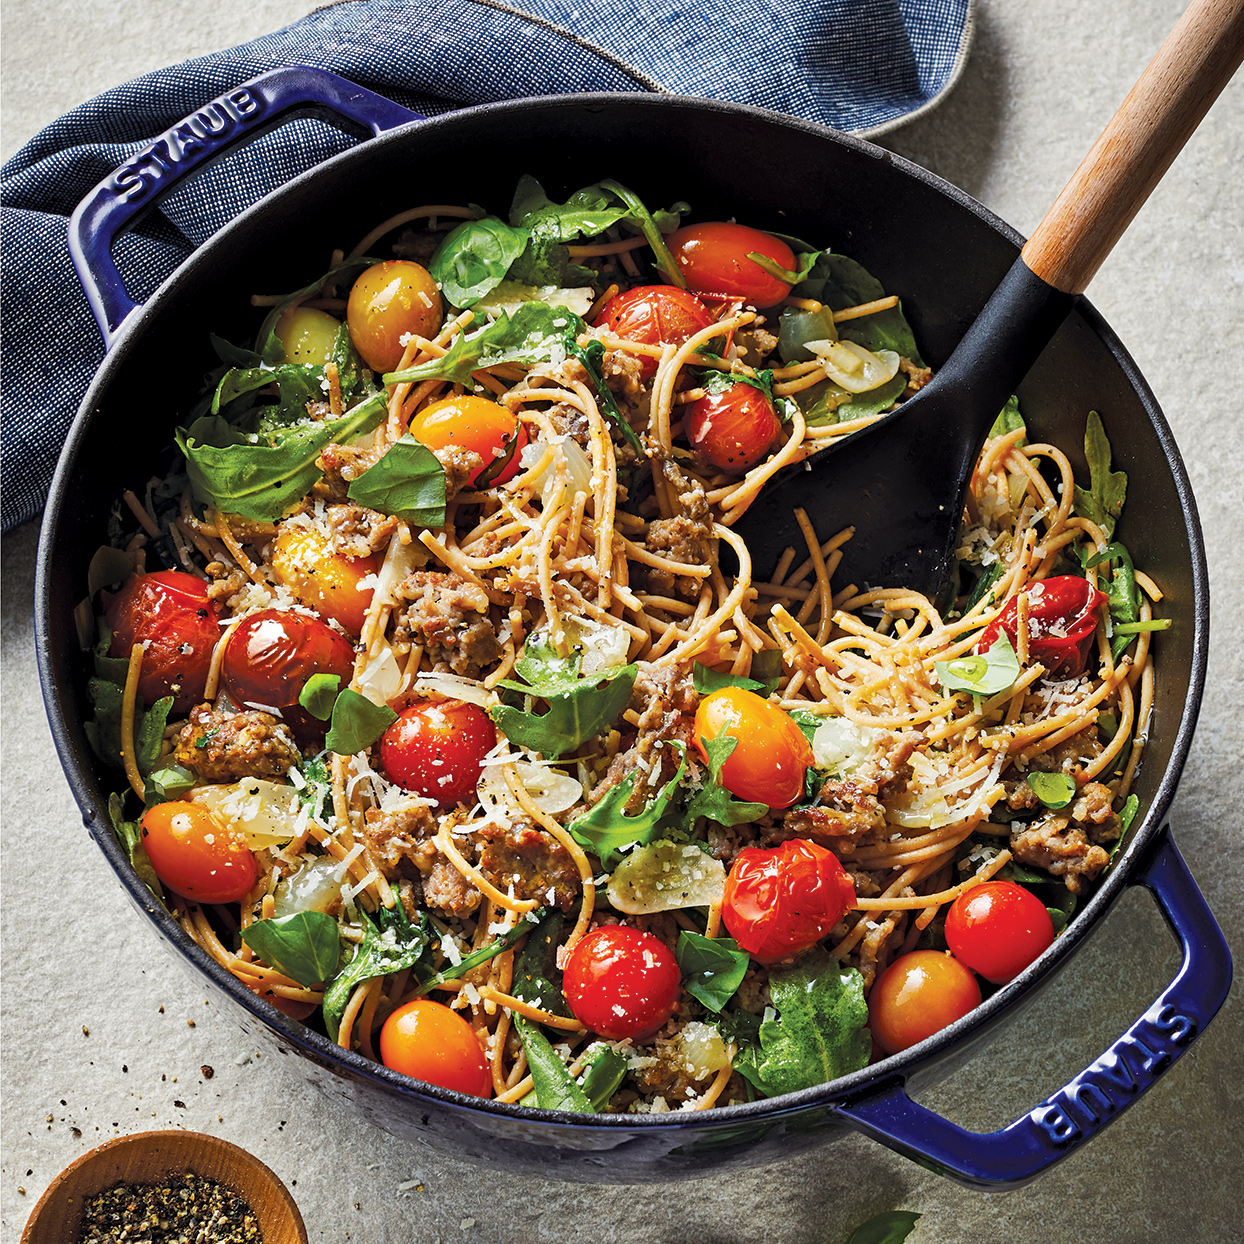 Whole-Grain Spaghetti with Italian Turkey Sausage, Arugula & Balsamic Tomato Sauce